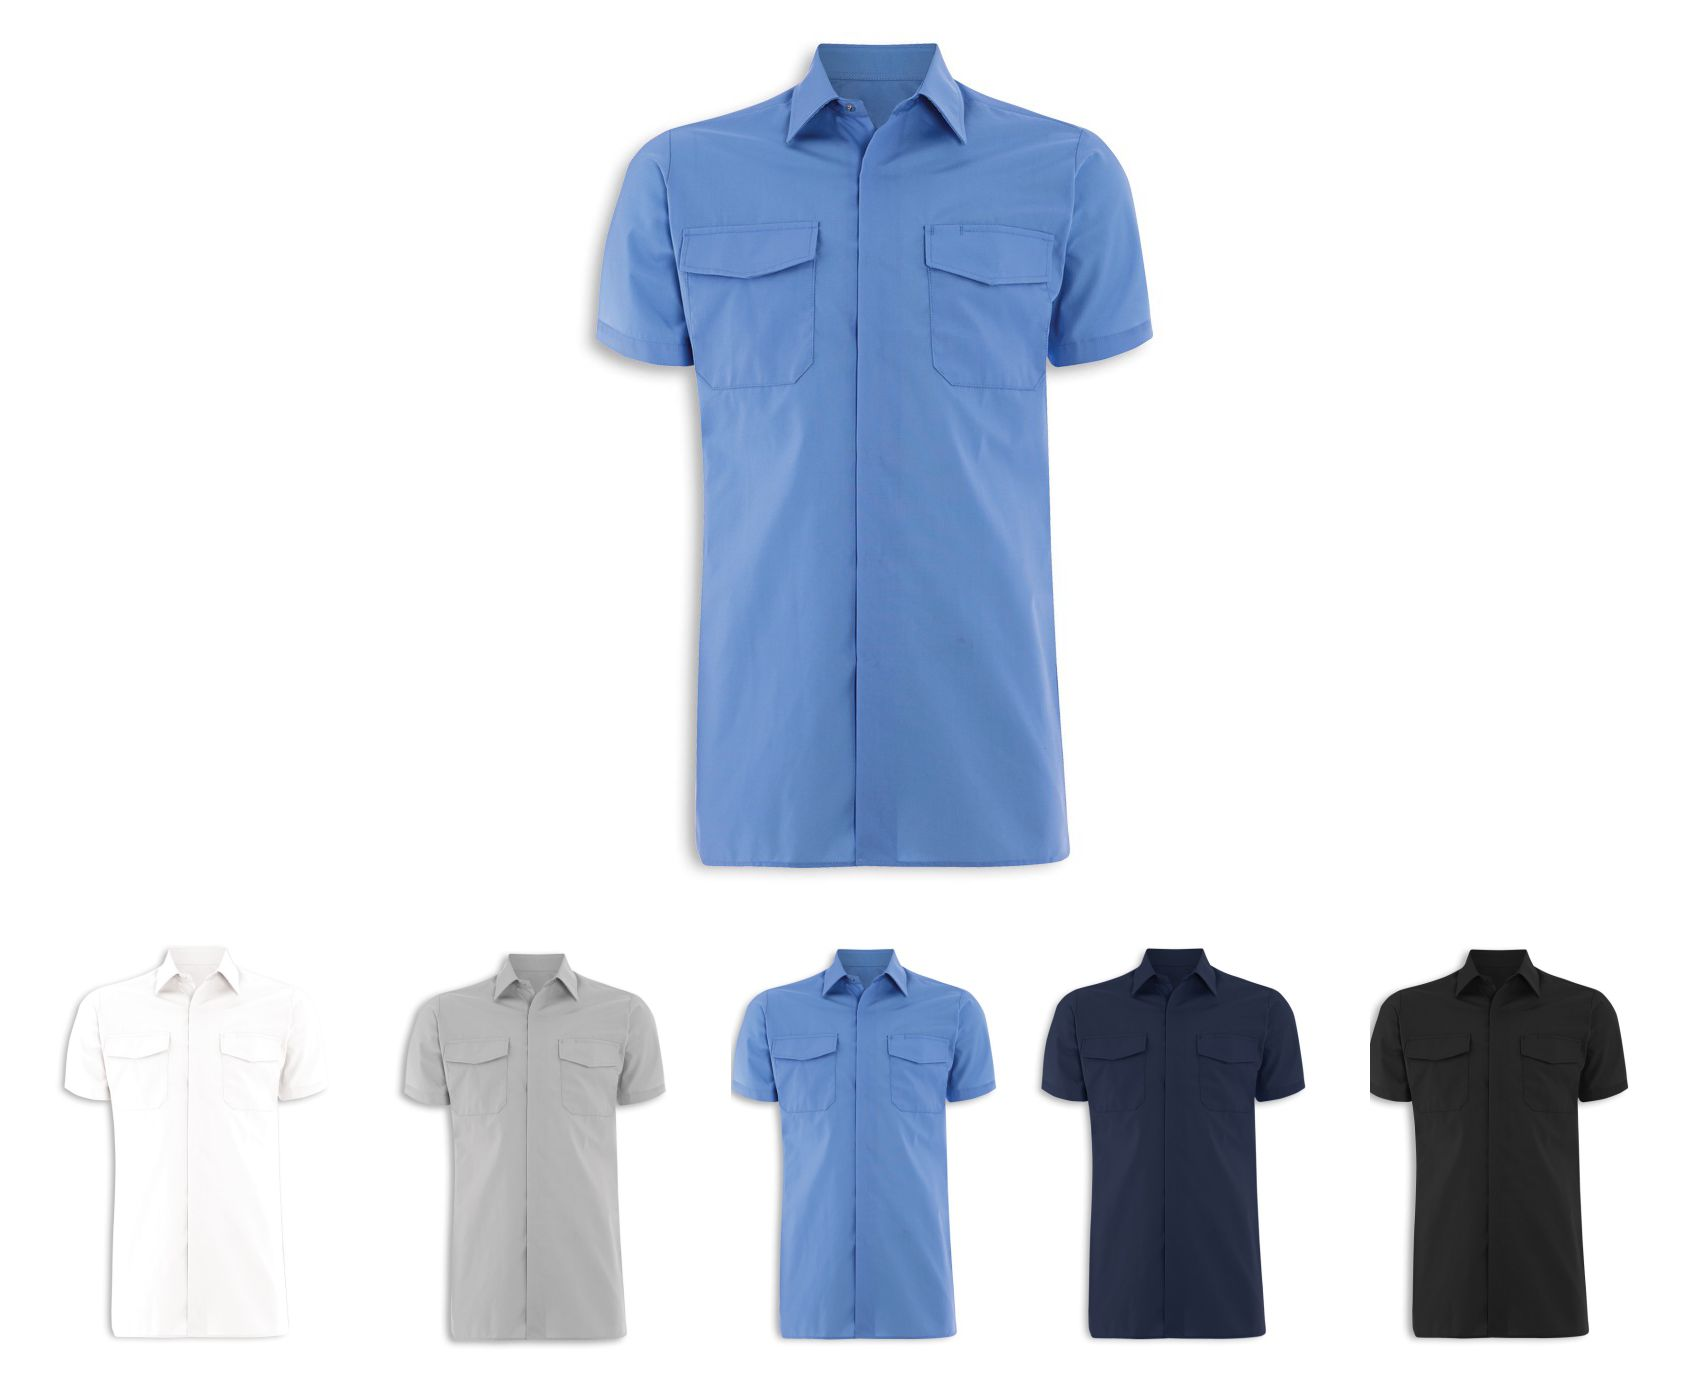 NM519 Men's Short Sleeve Work Shirt